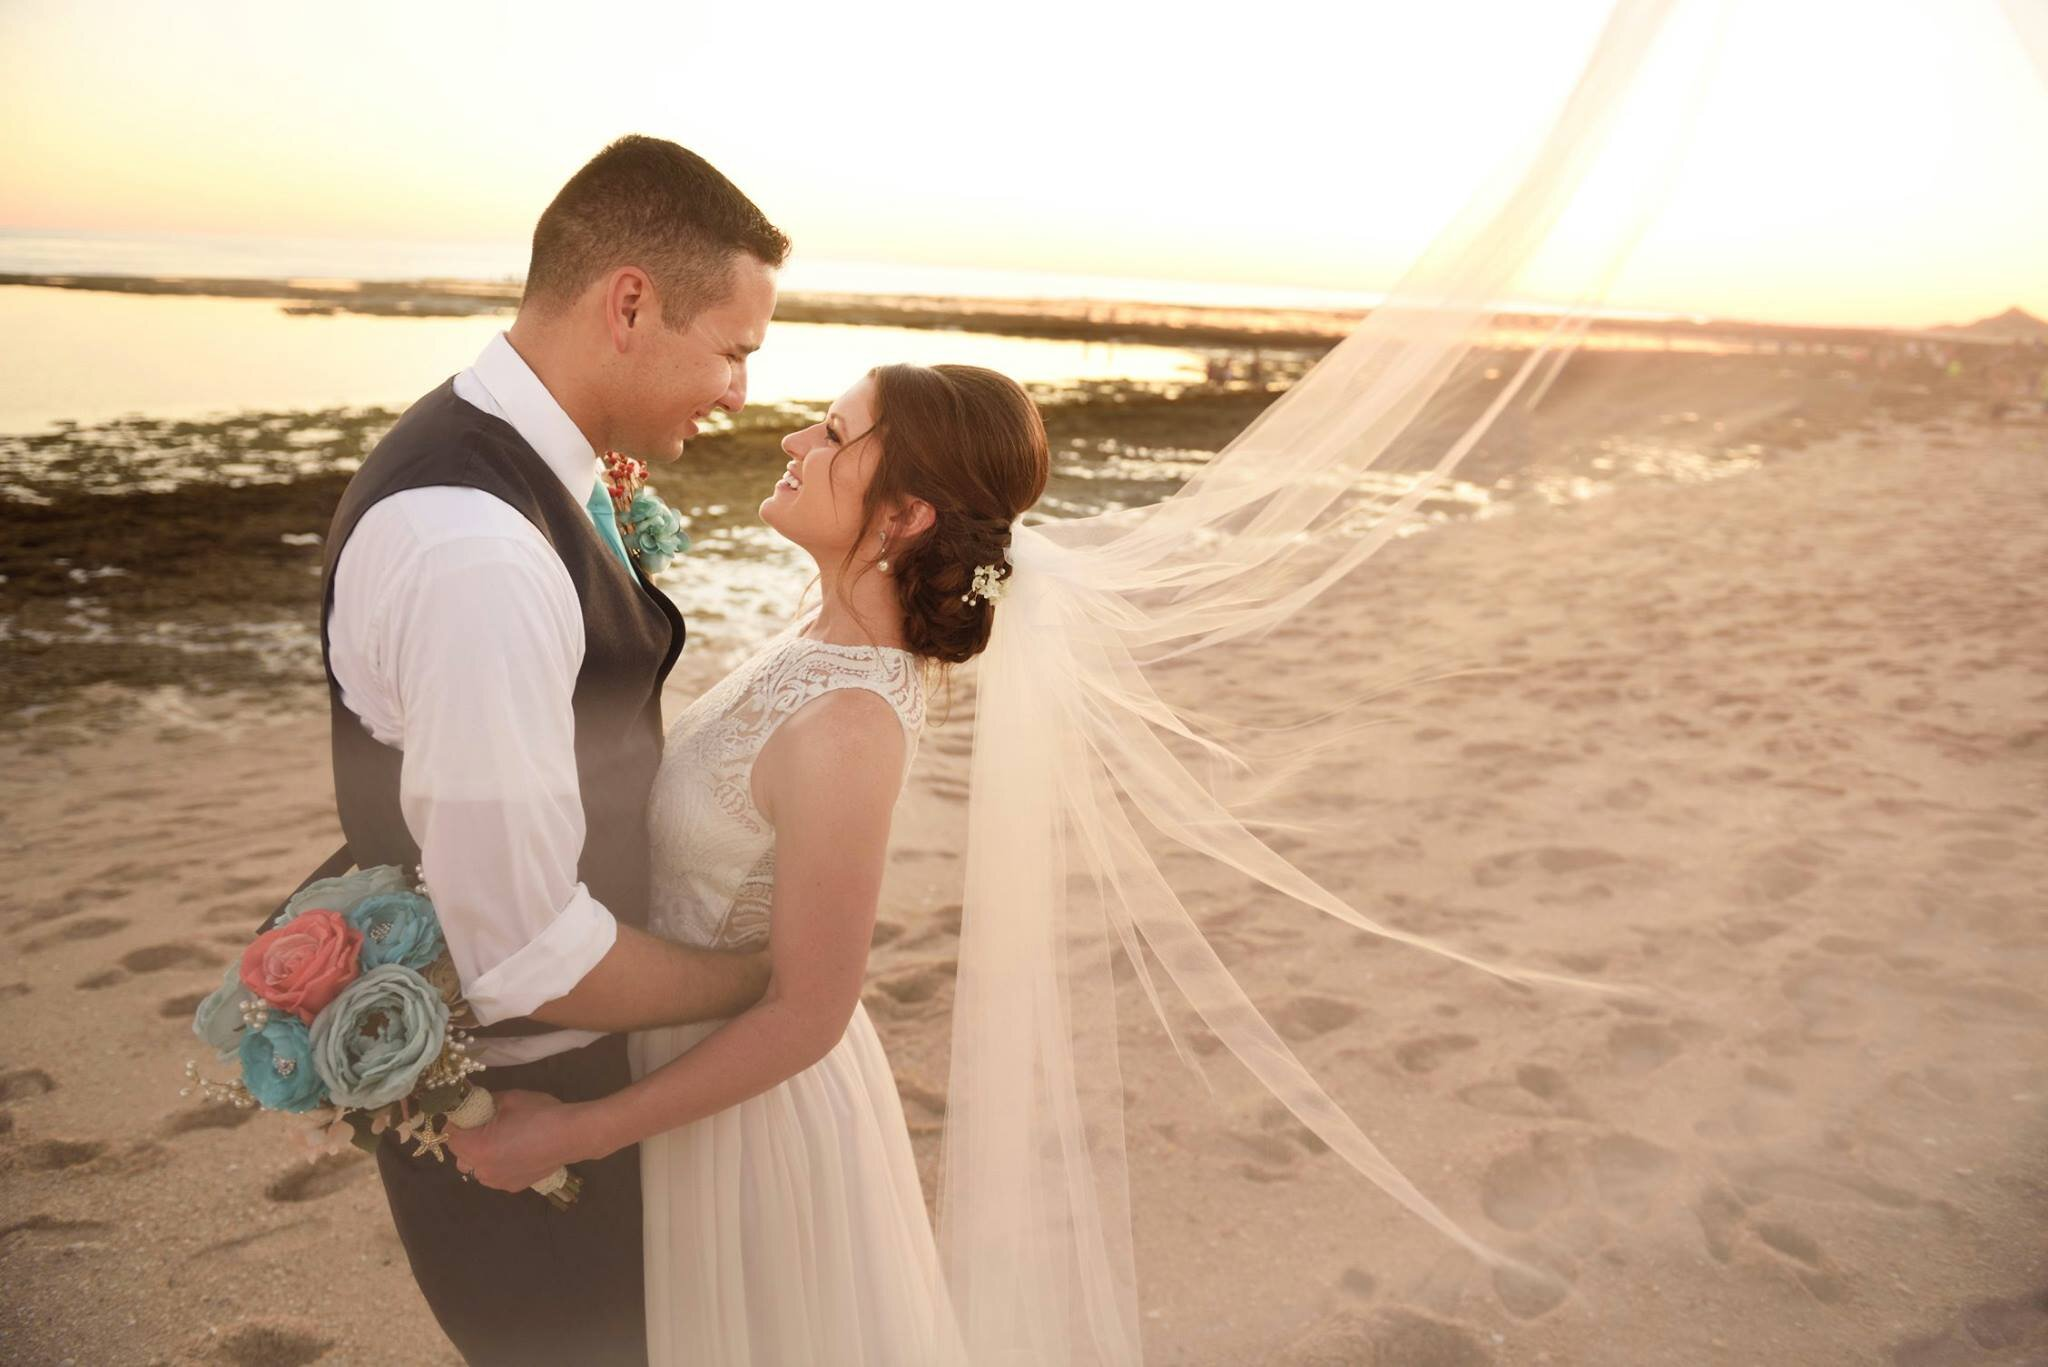 Bride and groom holding each other in bespoke lace wedding dress at beach resort wedding and long wedding veil.jpg